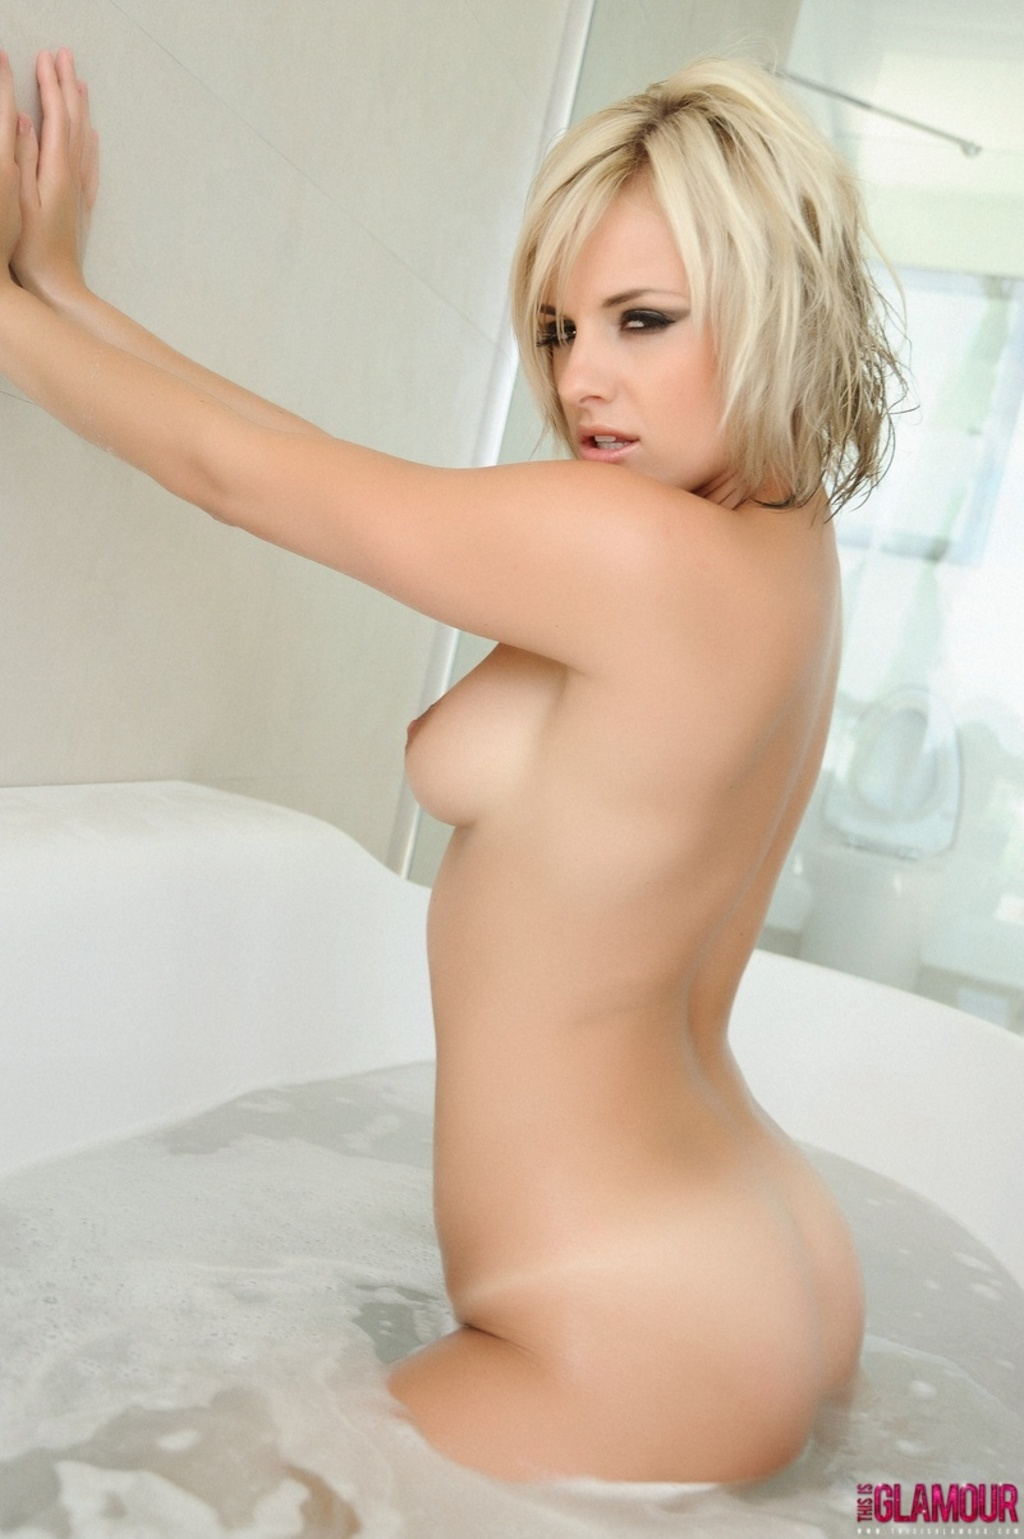 Amy green fully nude